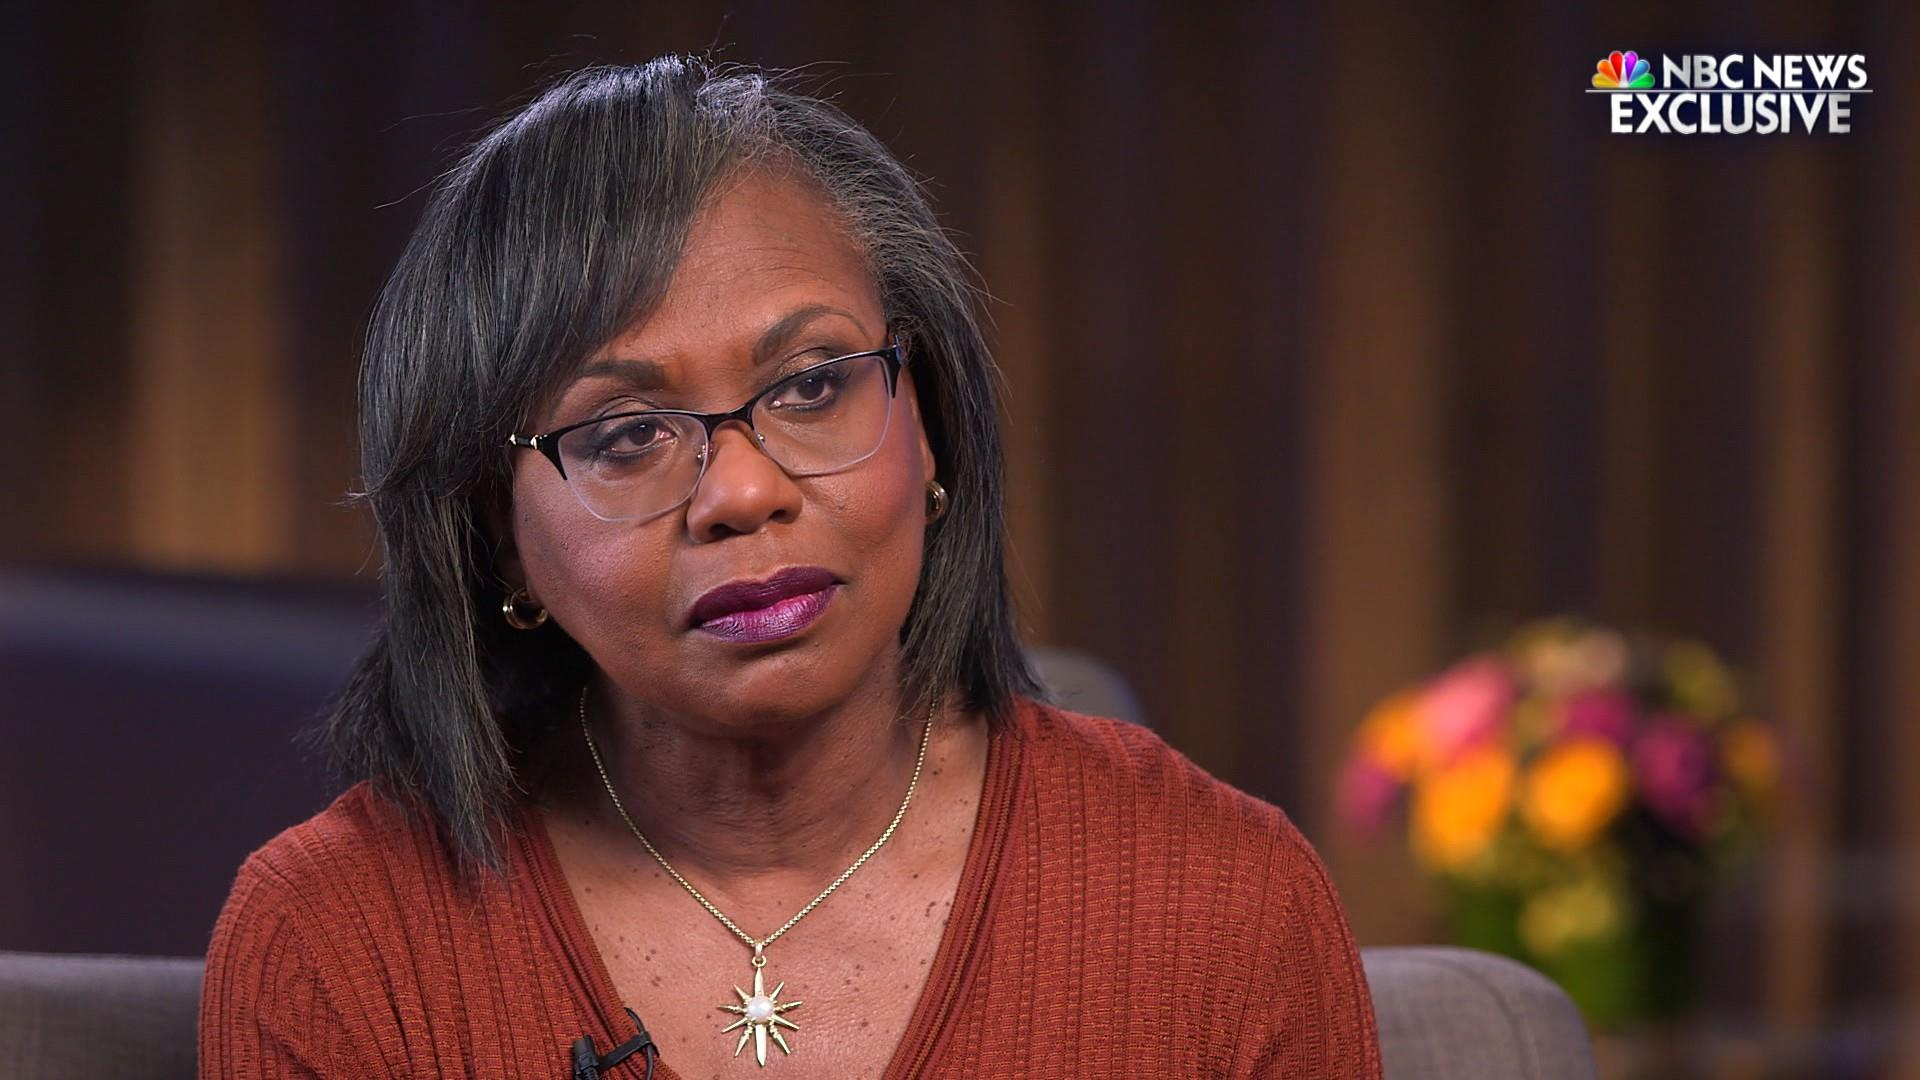 Anita Hill on whether she'd vote for Biden over Trump